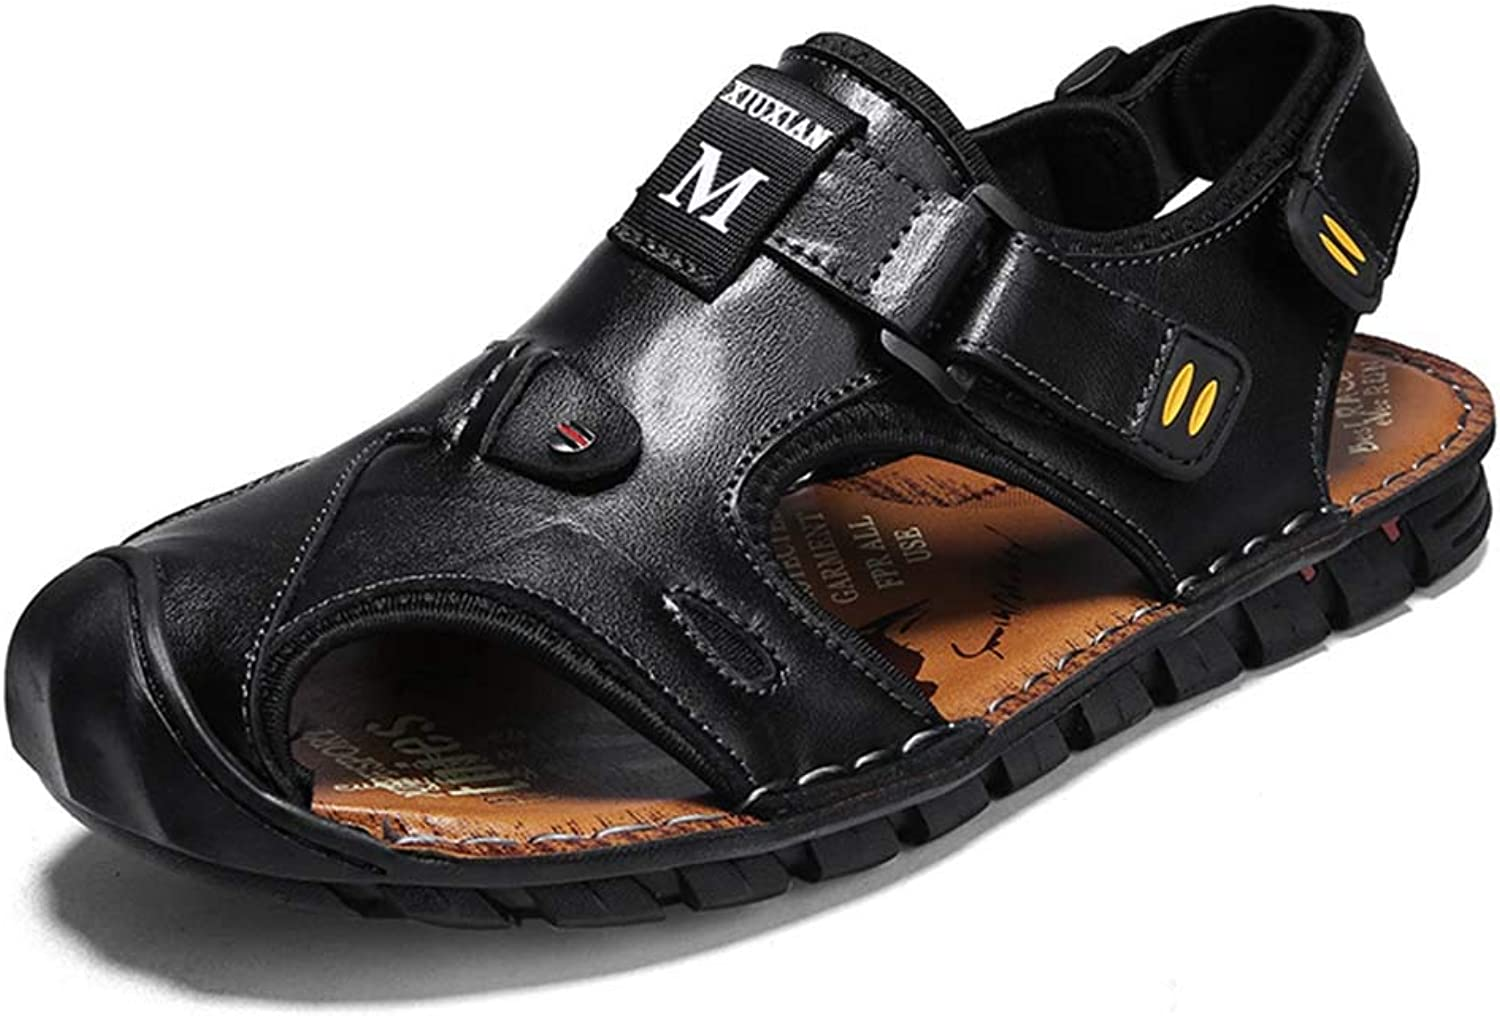 Men's Sandals Leather Non-Slip Roman shoes Baotou Breathable Beach shoes Summer